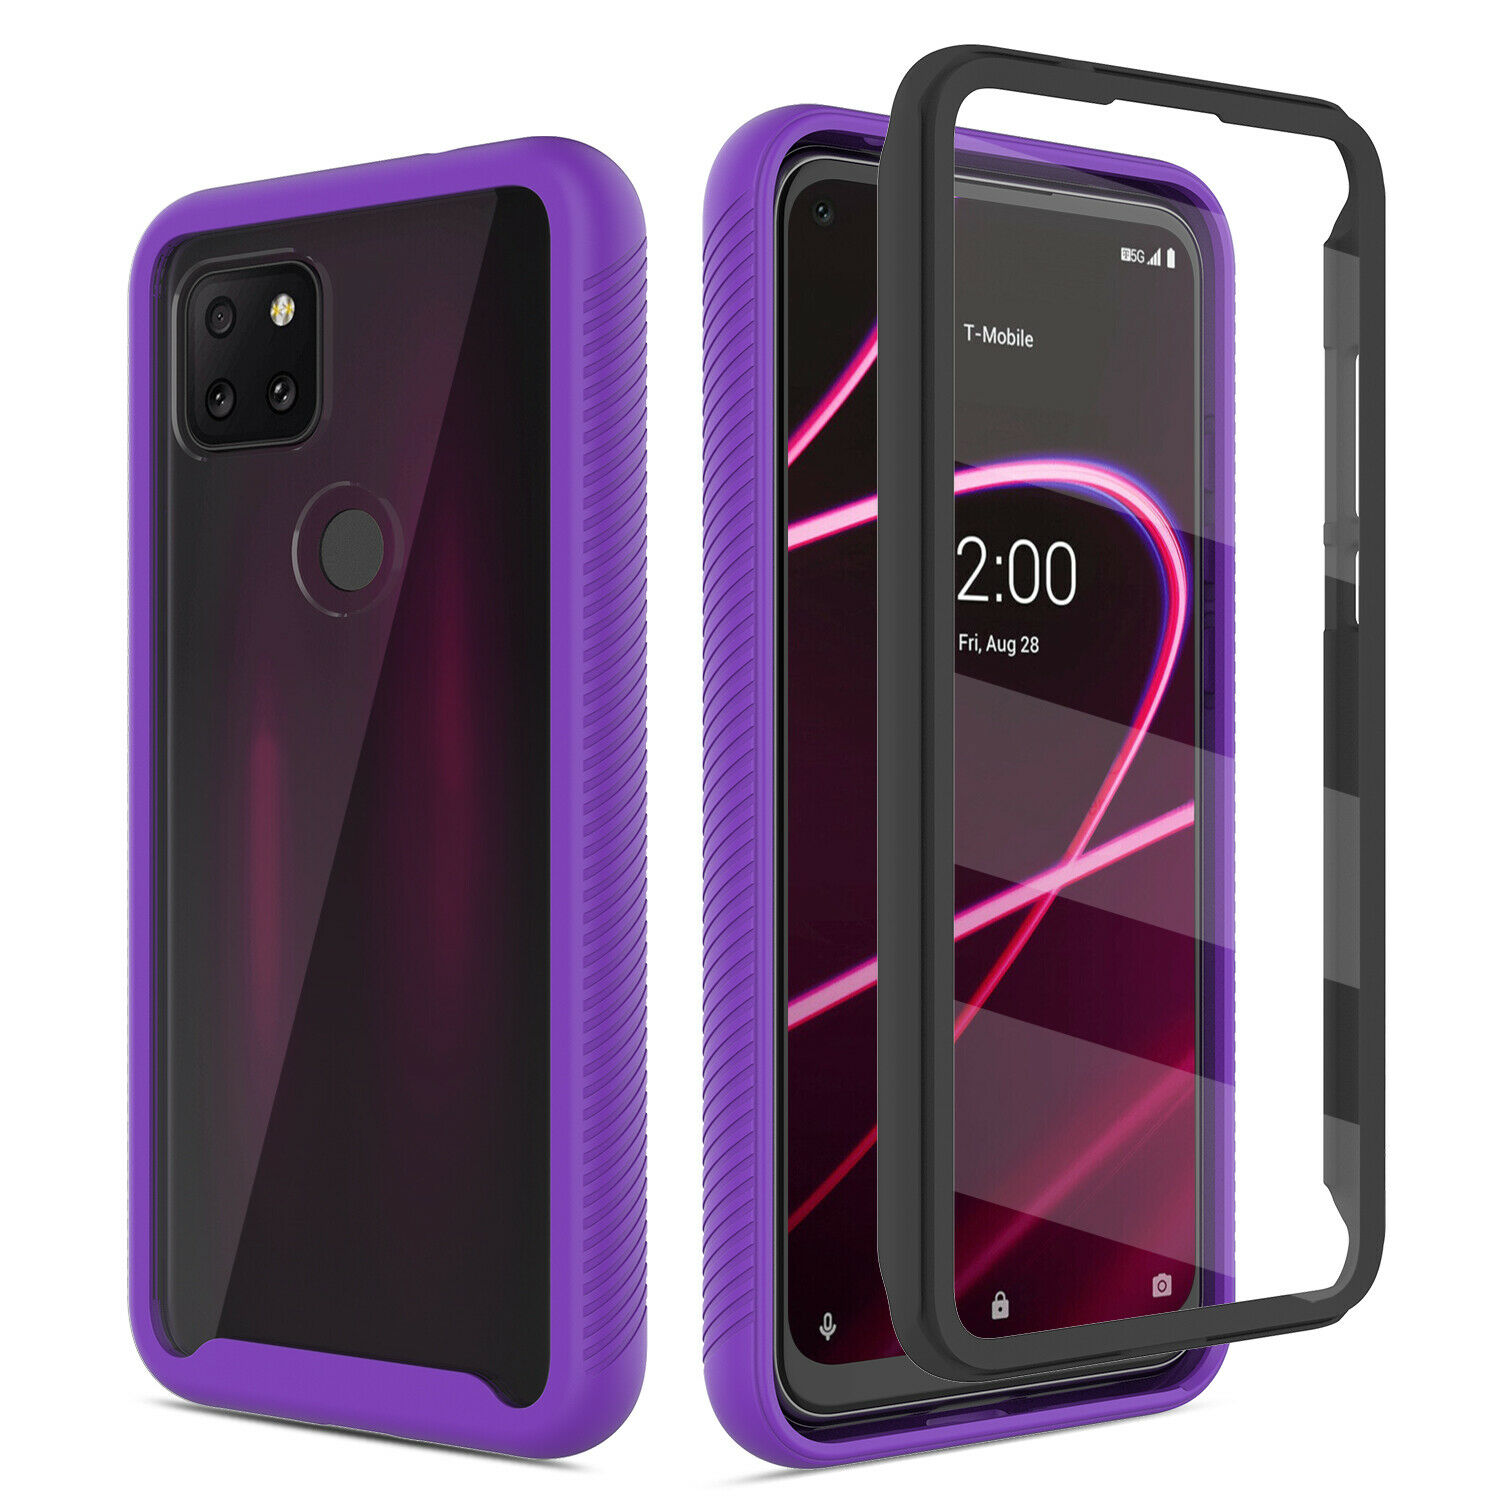 For T-Mobile REVVL 4/4+ Plus/REVVL 5G Case Cover With Built-in Screen Protector Cases, Covers & Skins